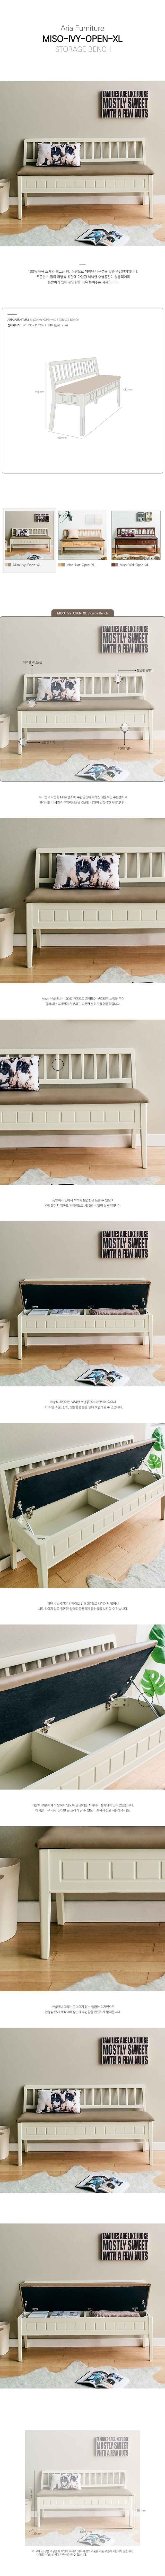 Miso-Ivory-Long-Storage-Bench_180912.jpg